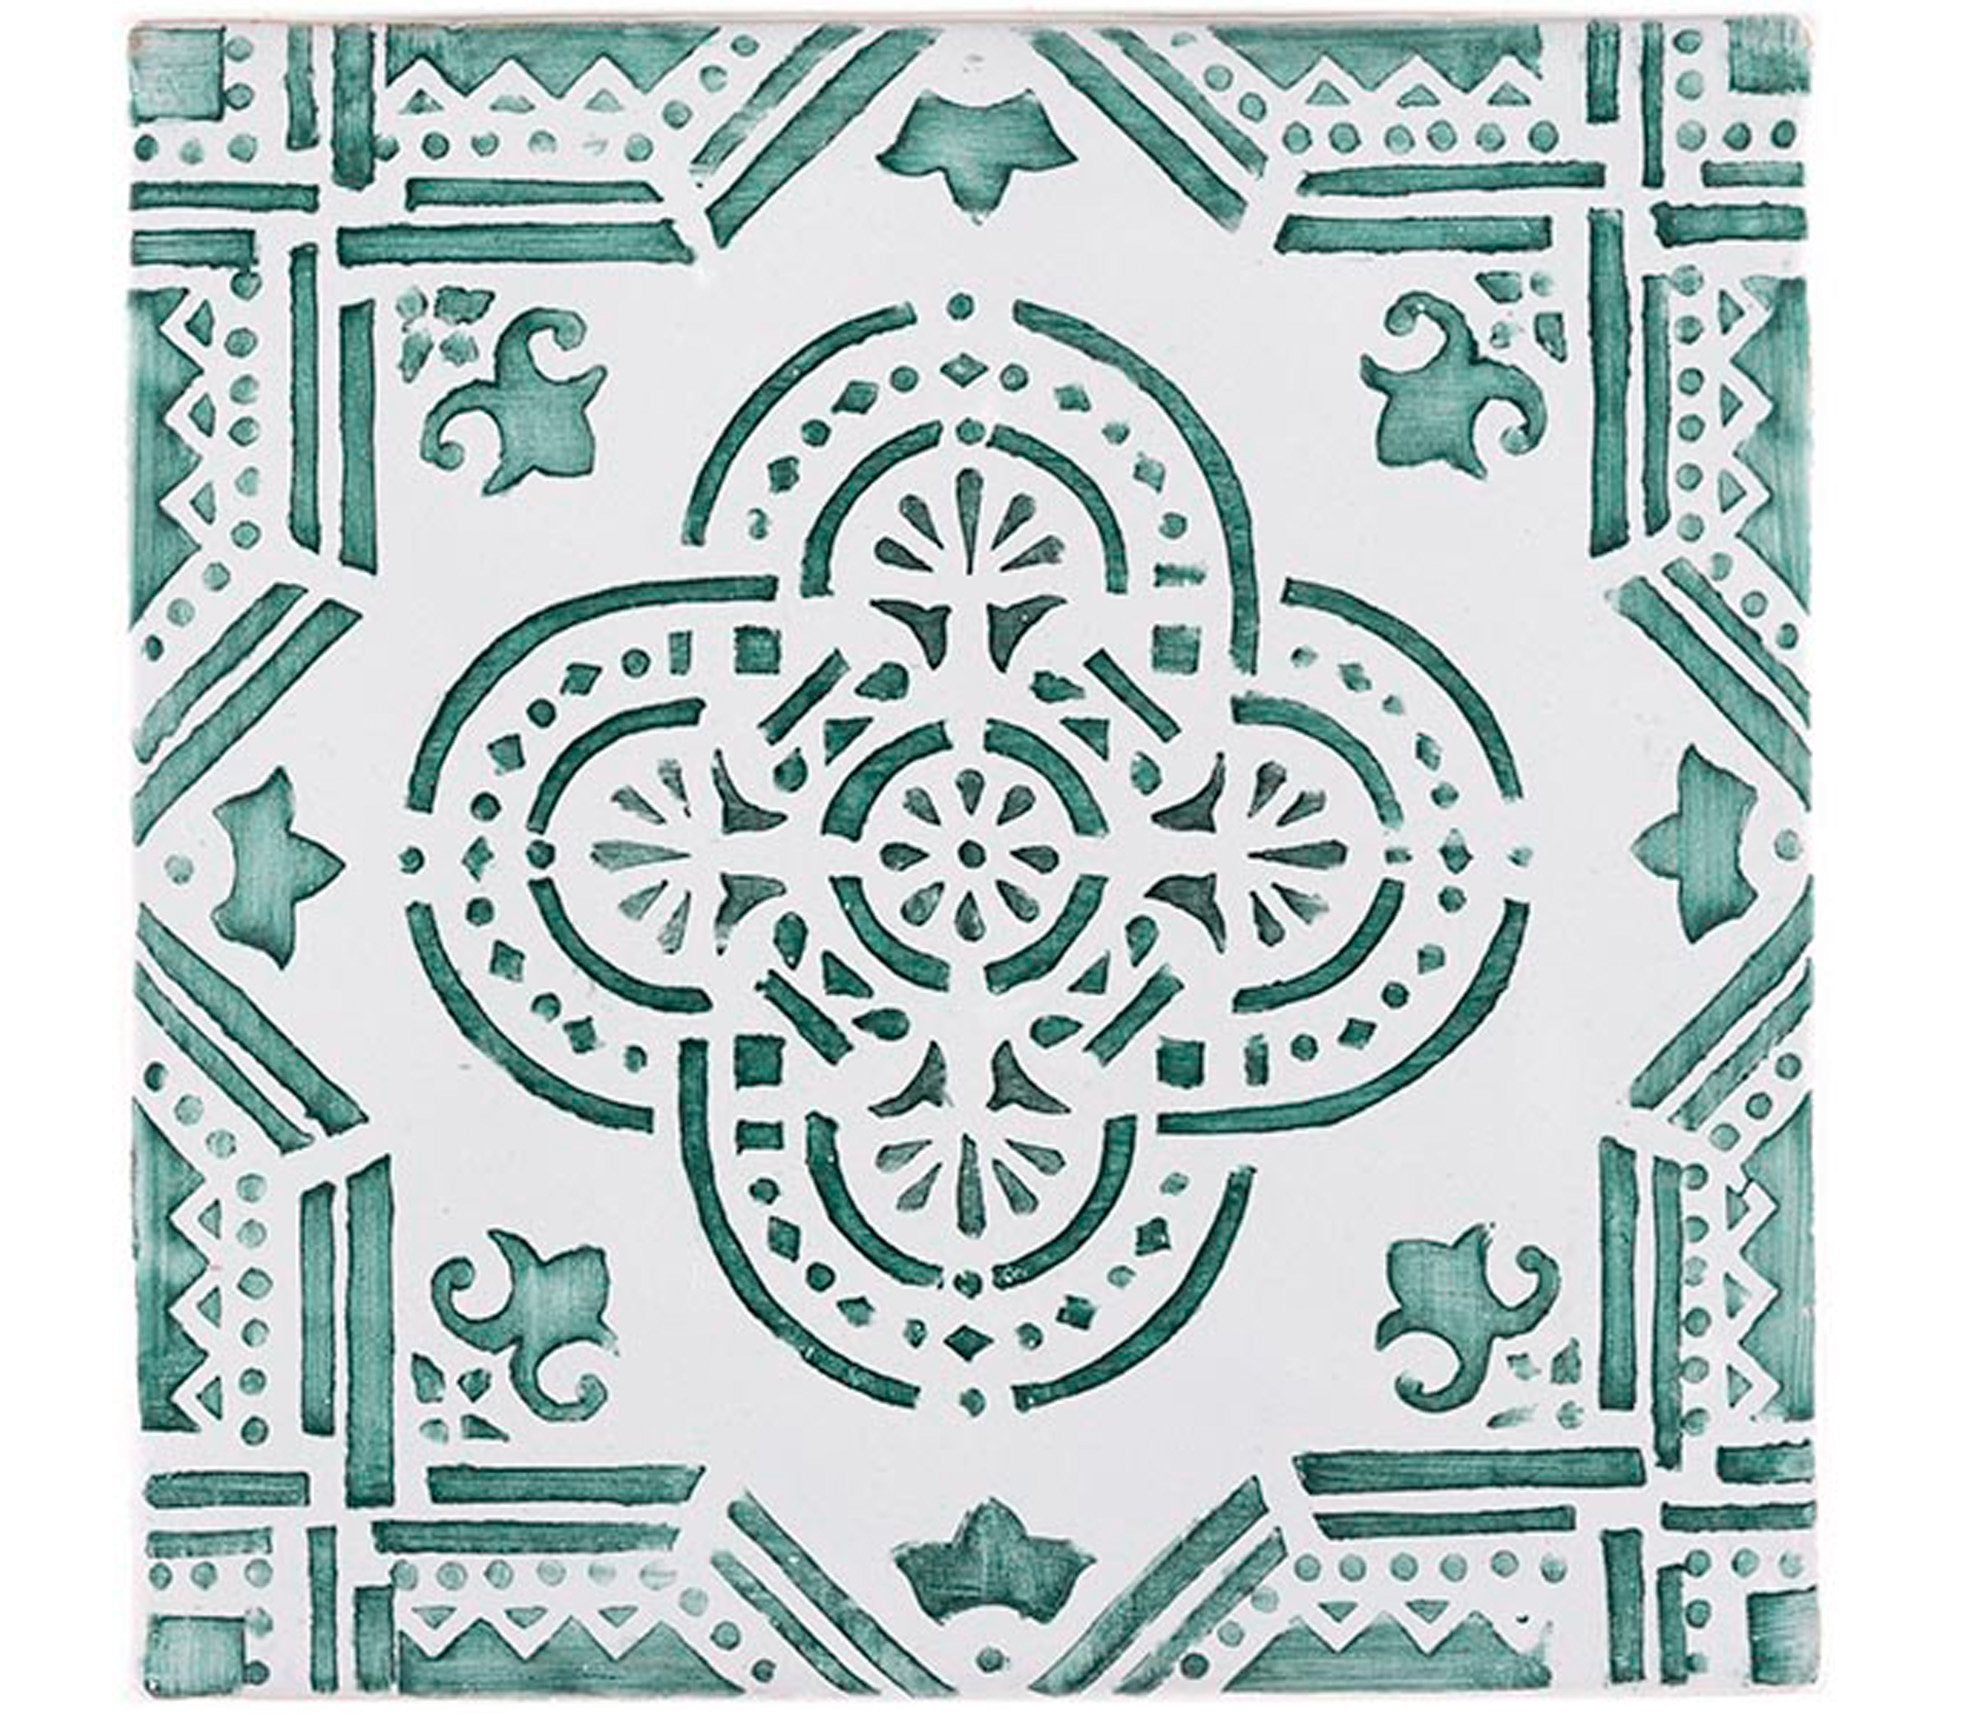 Series S Handpainted Tiles Product Image 26